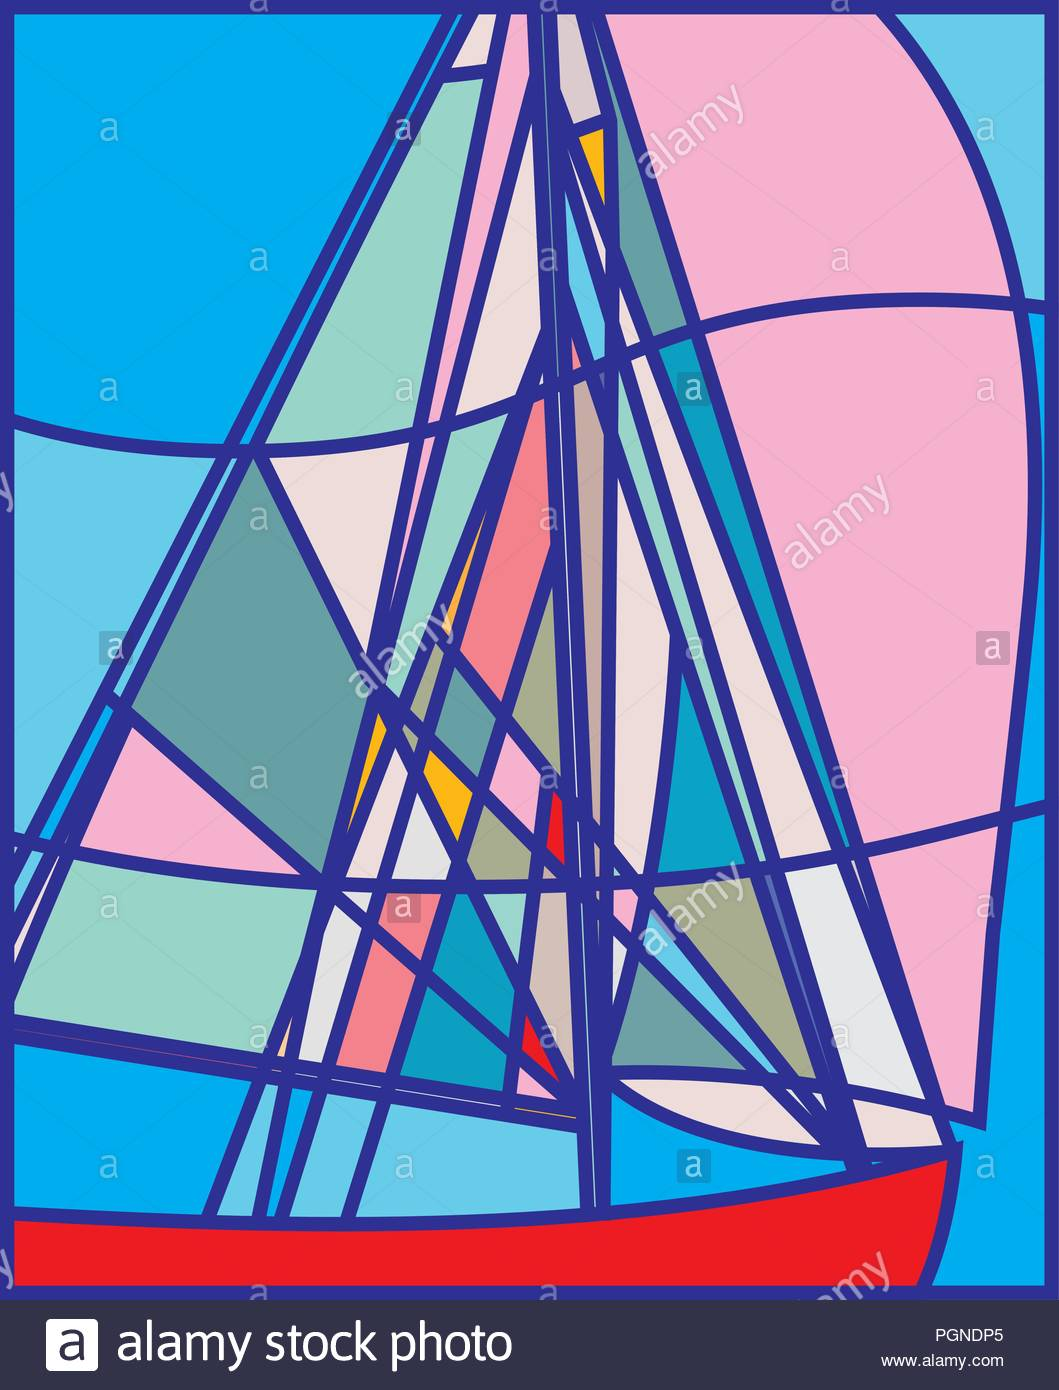 Abstract Sailboat with Pink Spinnaker, Linear, Stained Glass, Sailing, Poster Design, Summer Fun, Nautical, Sports and Recreation, Golden Globe Race - Stock Image